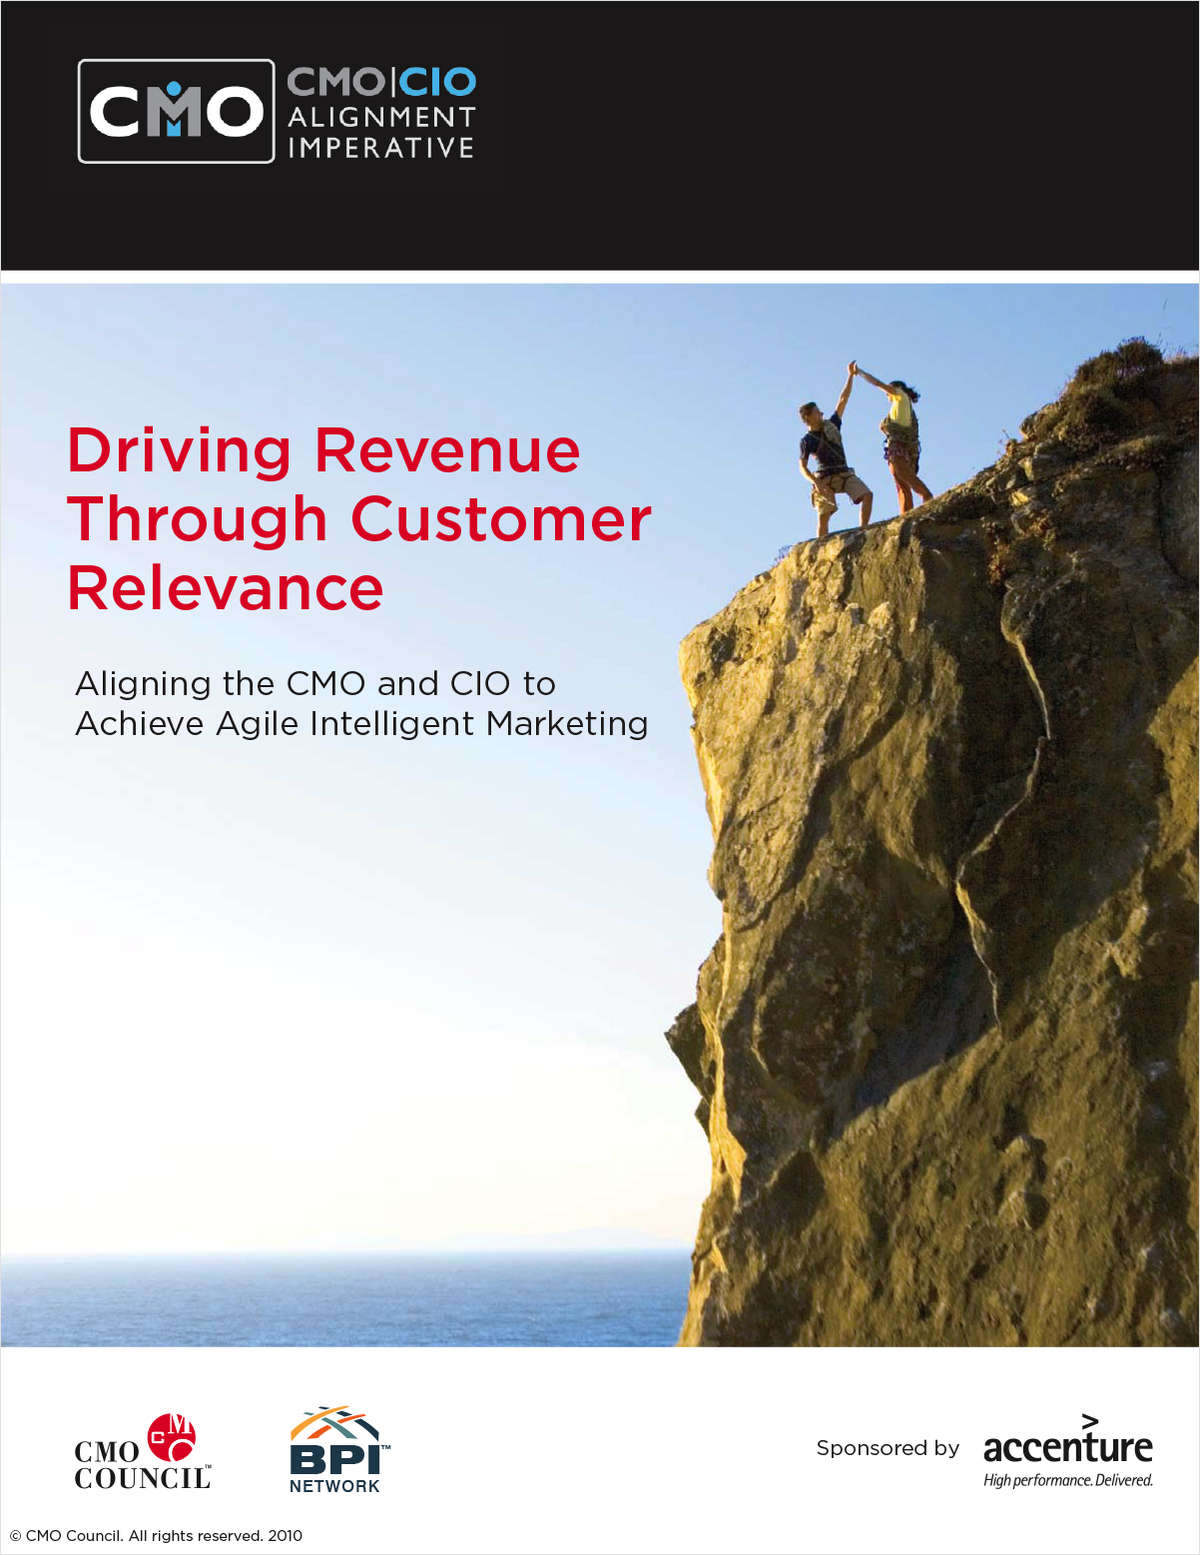 Driving Revenue through Customer Relevance